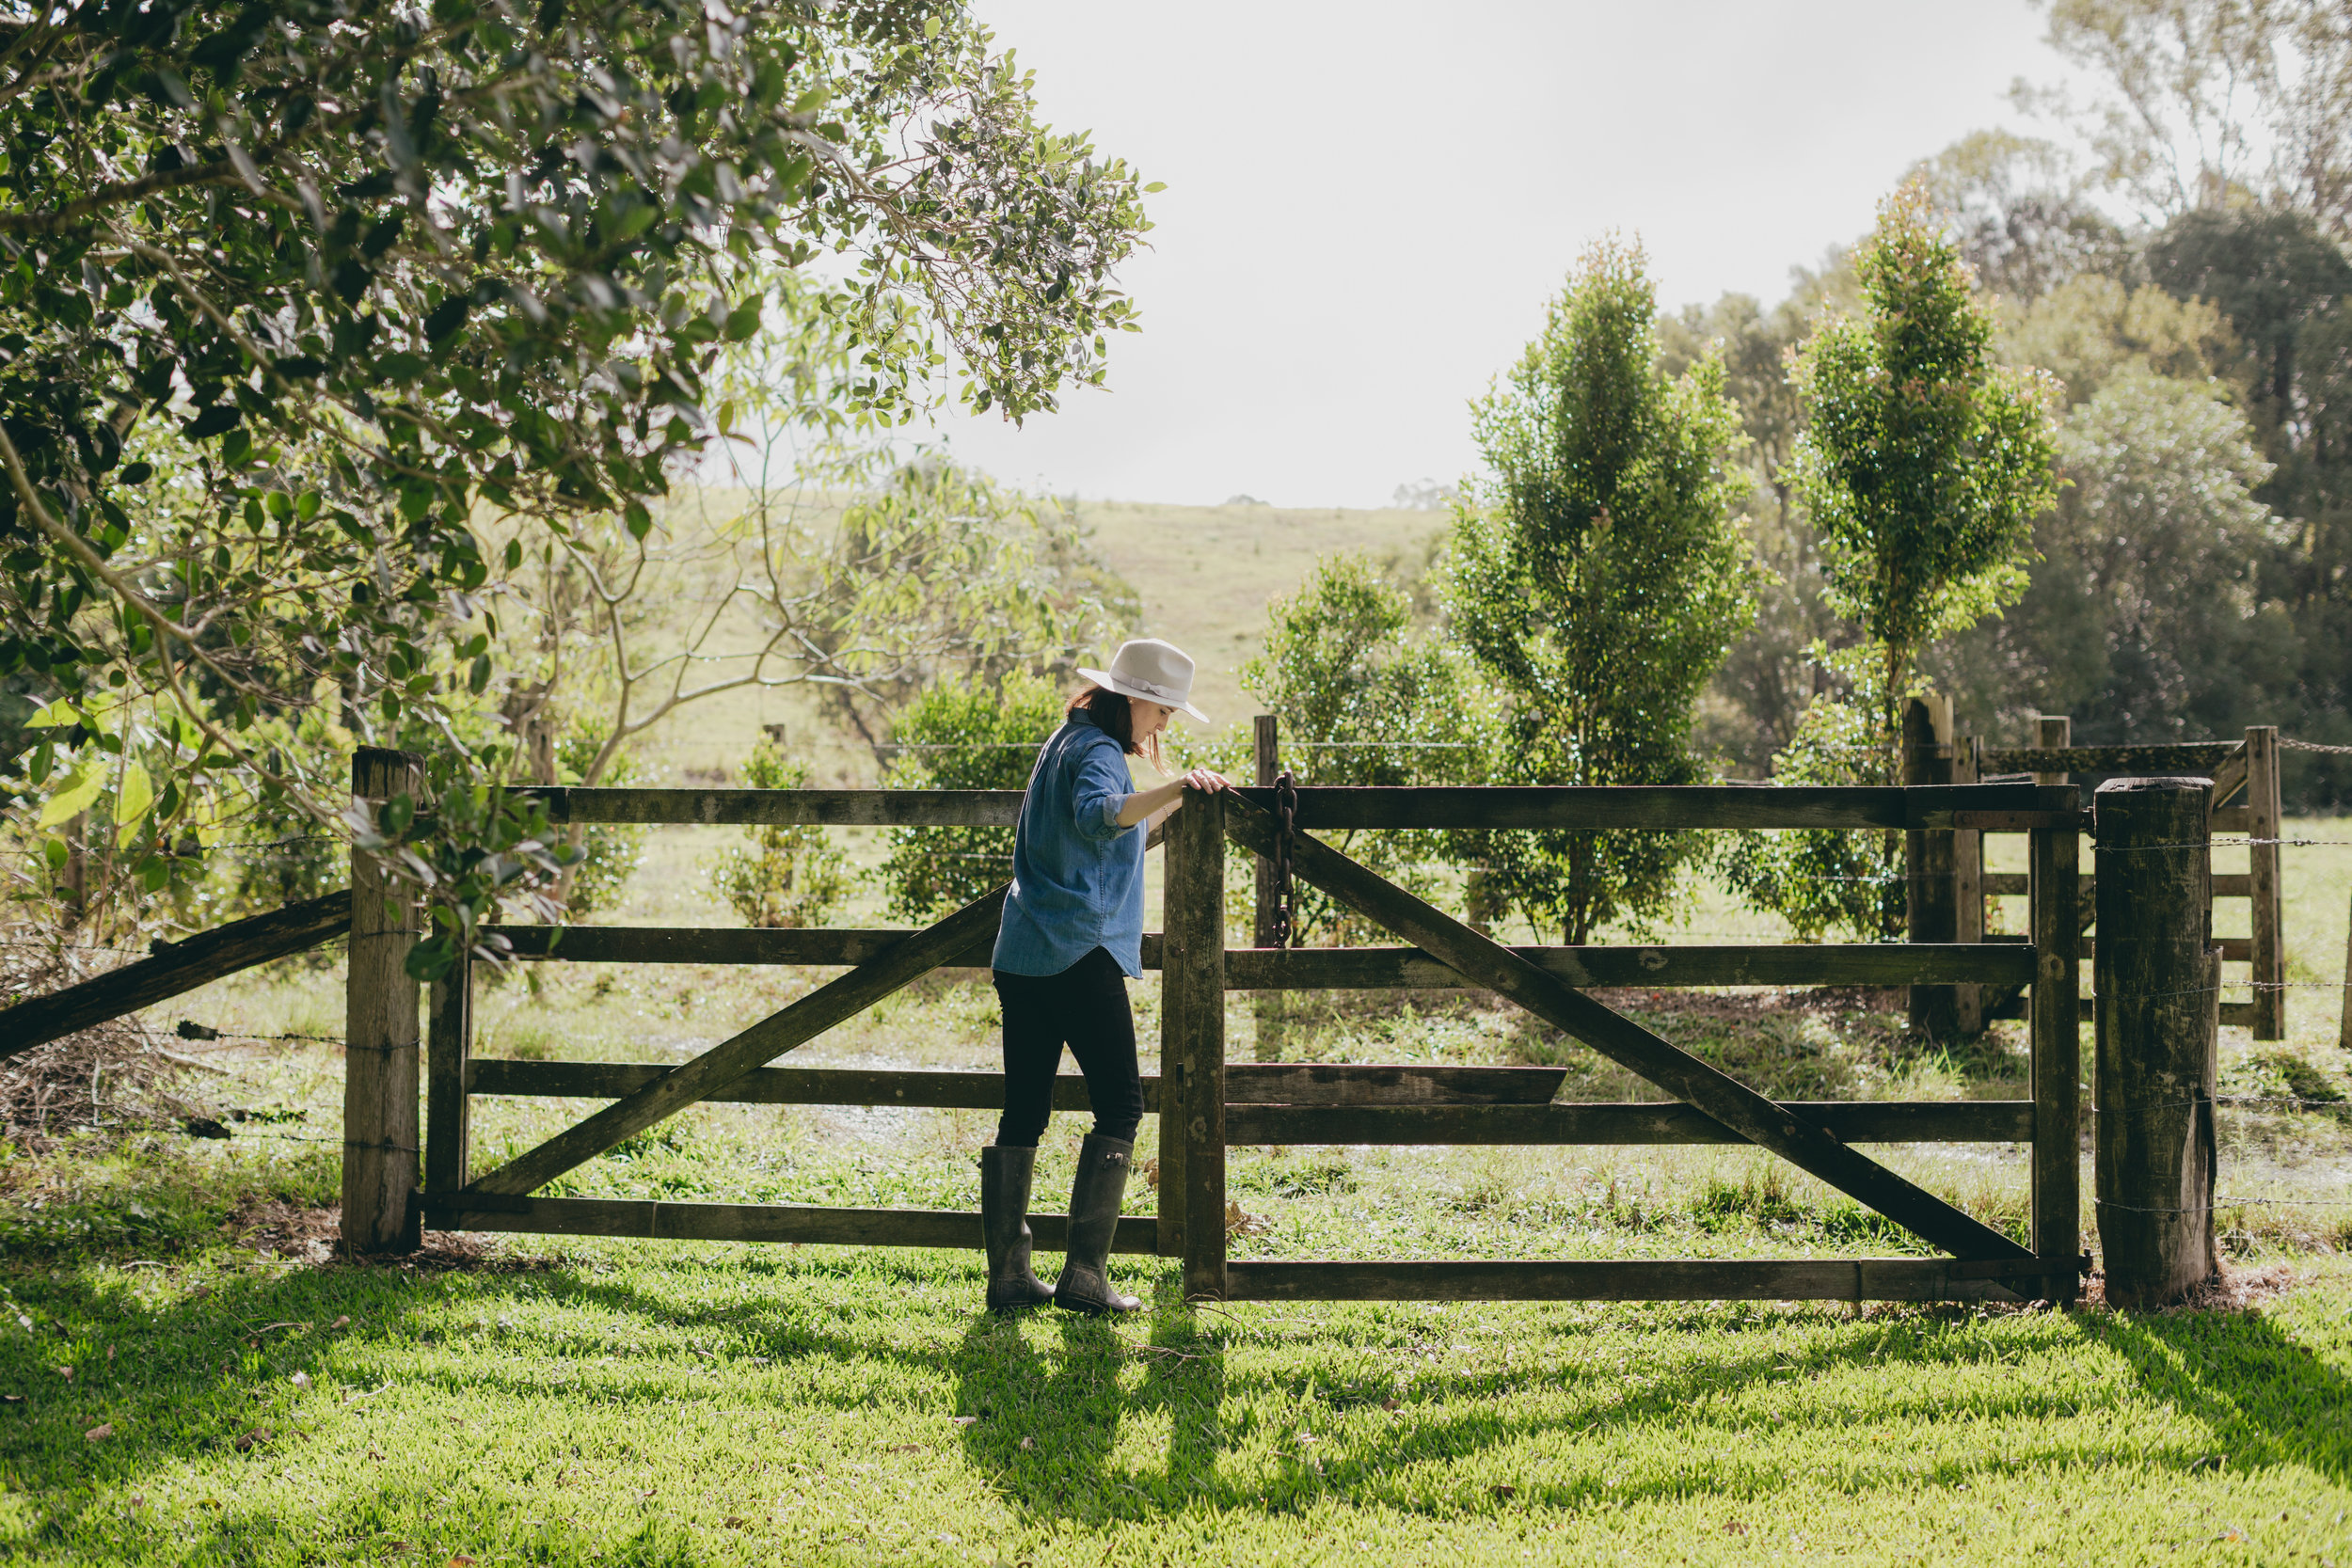 Rustic wooden gate being opened by farm worker.